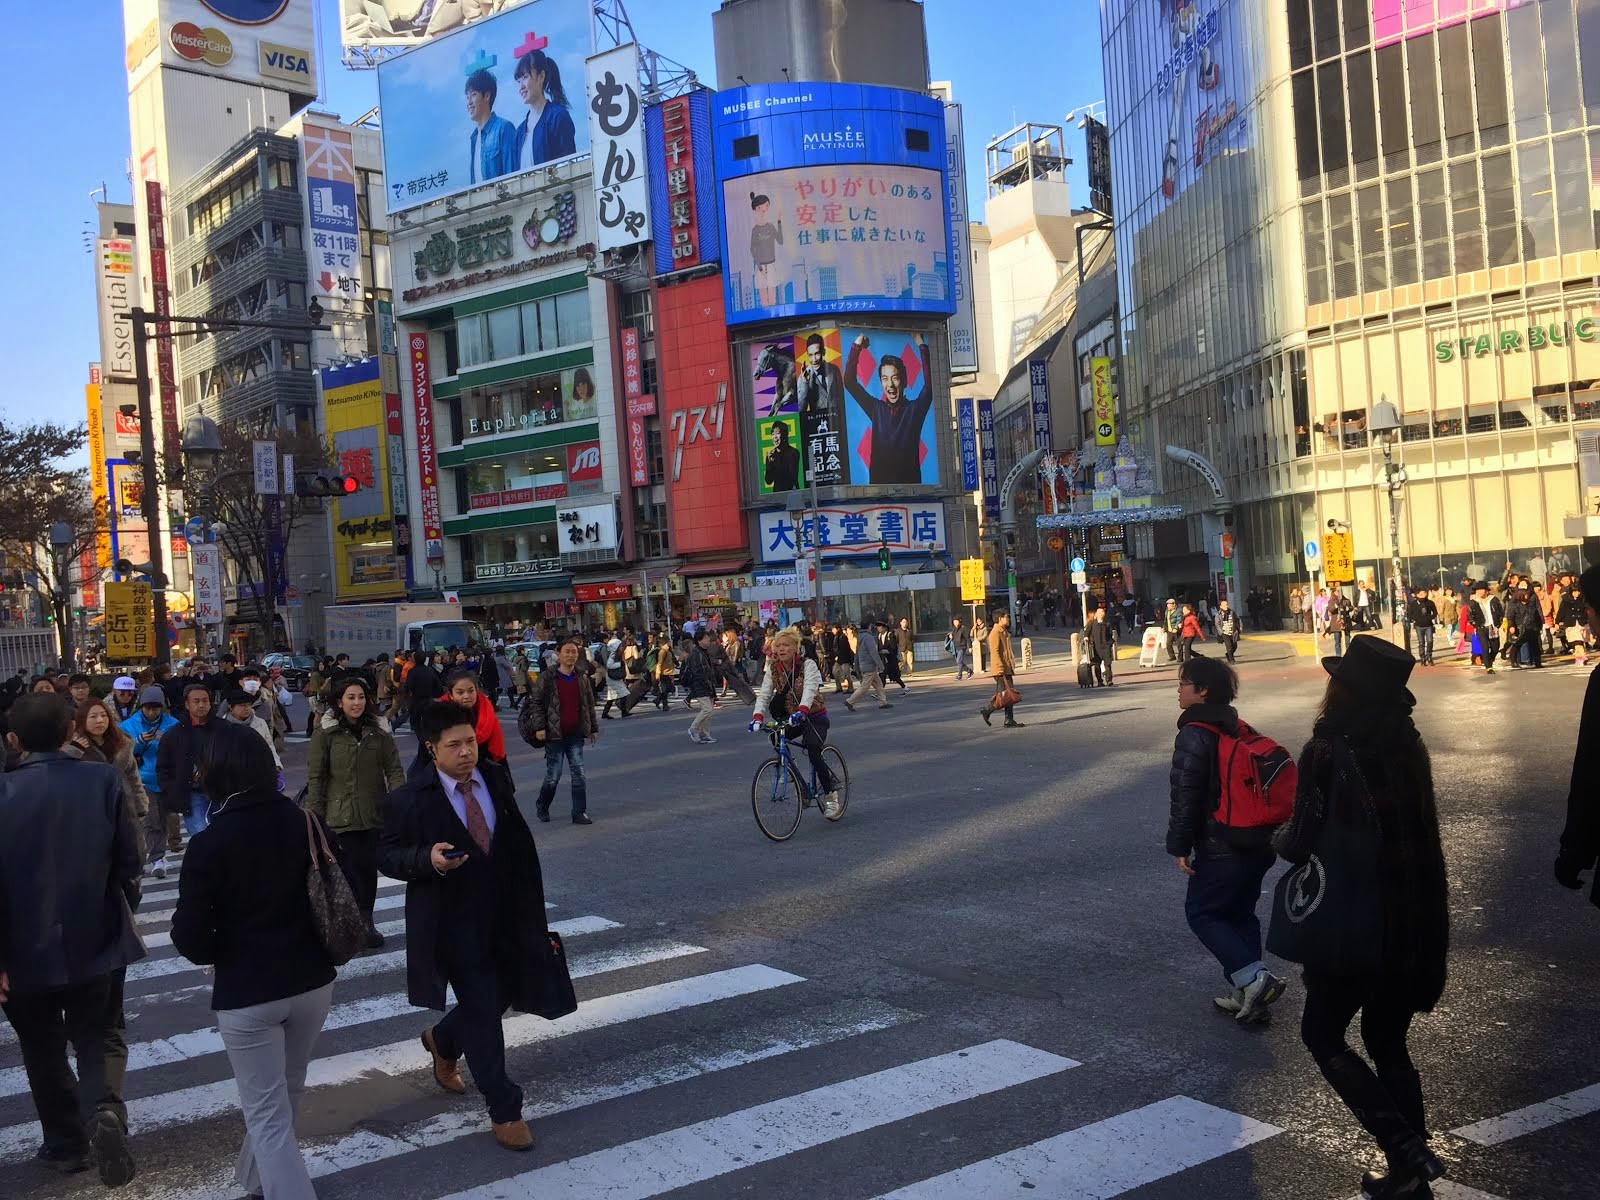 Fukubukuro, Japan 2015 - Crazy for Shopping during the New Year!